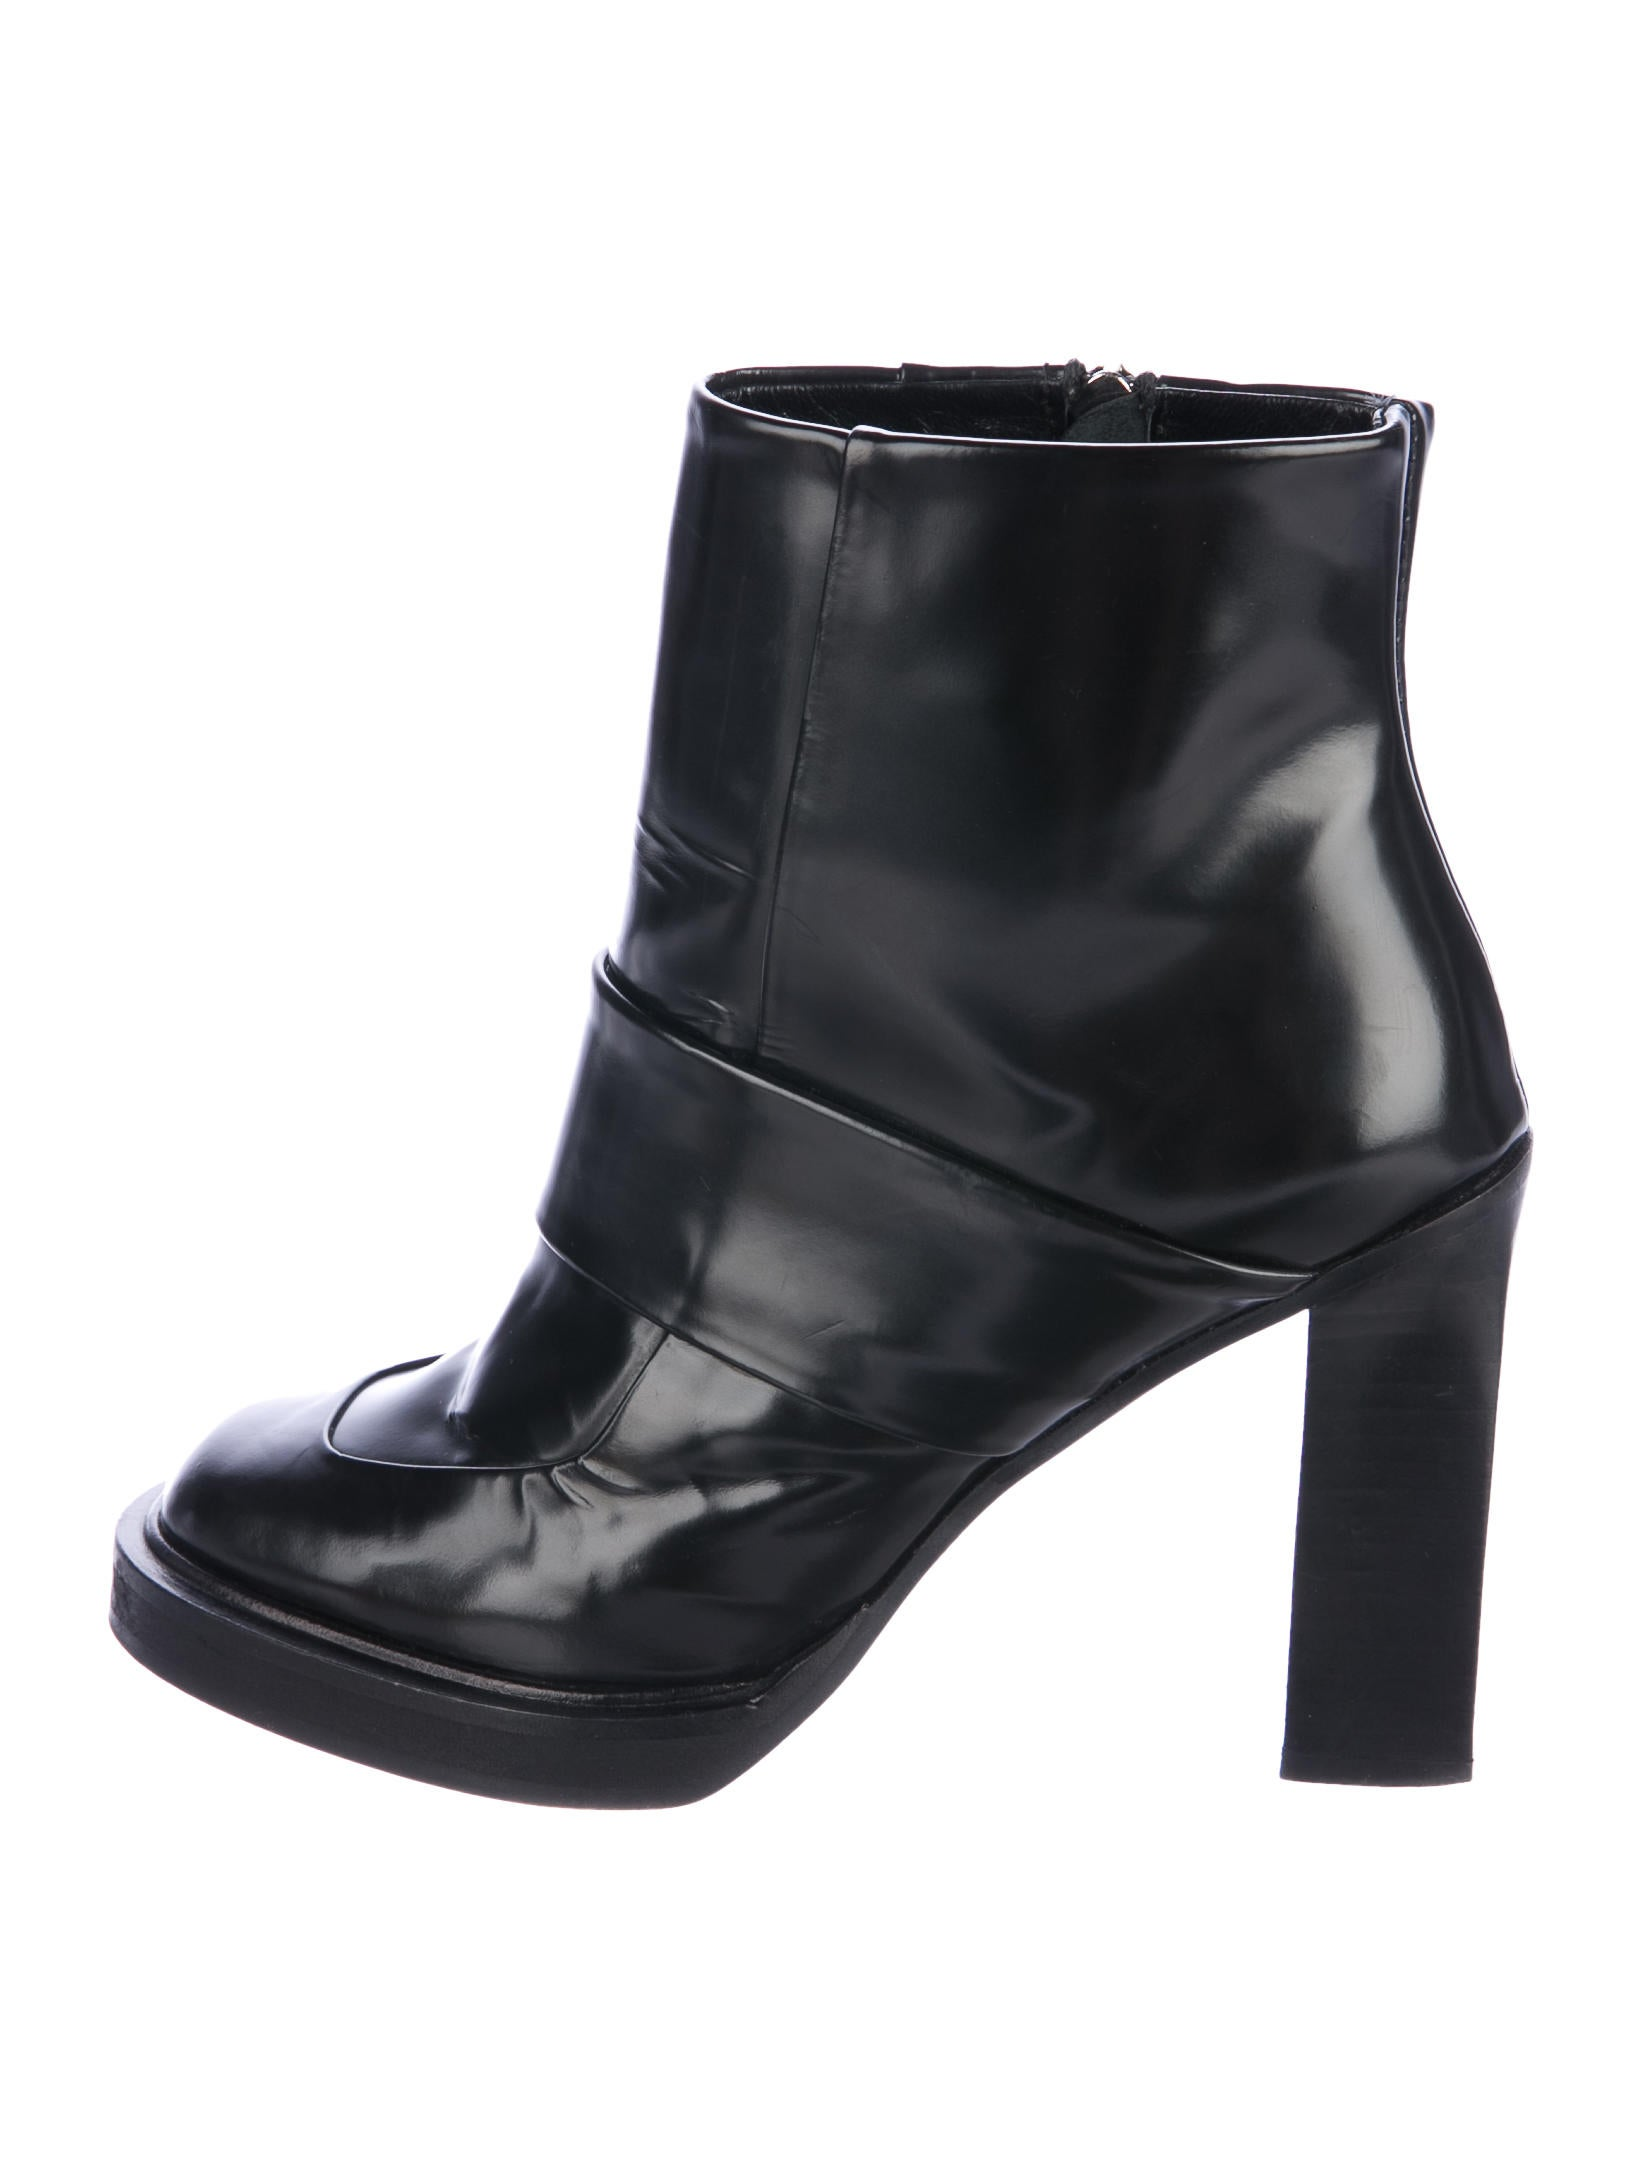 outlet online shop cheap price wholesale Carven Leather Round-Toe Ankle Boots 2014 newest cheap online zA2oYNjays